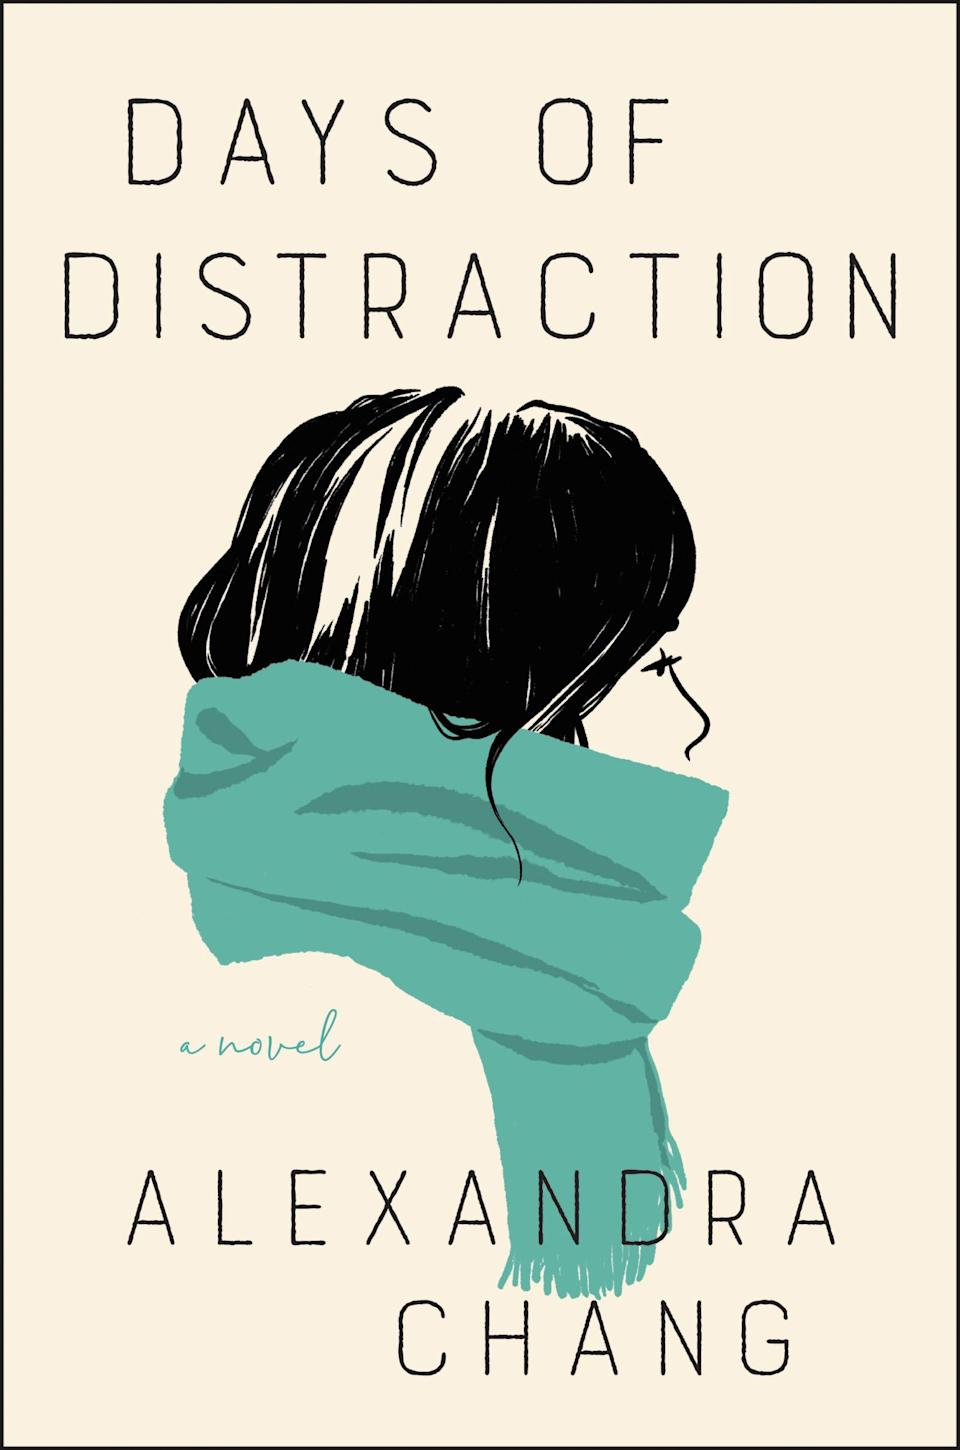 """[It] is a fragmented, funny, heartbreaking novel after my own heart. It's a coming-of-age story about a Chinese American narrator who struggles both with her professional aspirations and with her interracial relationship, all the things her white partner doesn't understand and has the privilege of not having to care about. It's vivid, surprising, and beautiful. —<em>Rachel Khong, author of</em> <a href=""""https://www.amazon.com/Goodbye-Vitamin-Novel-Rachel-Khong/dp/1250109167"""" rel=""""nofollow noopener"""" target=""""_blank"""" data-ylk=""""slk:Goodbye, Vitamin"""" class=""""link rapid-noclick-resp"""">Goodbye, Vitamin</a>"""